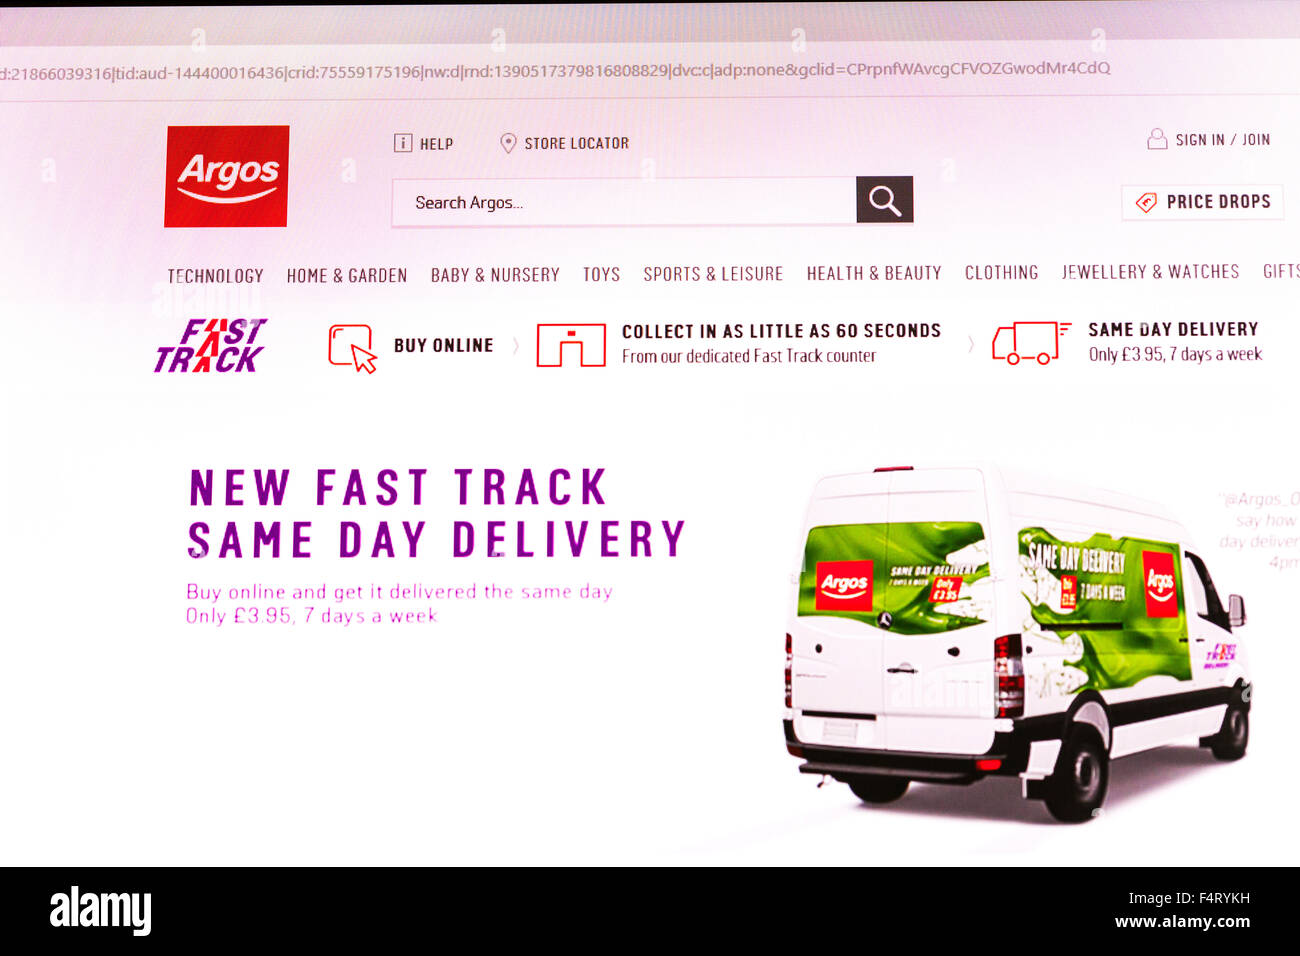 Argos website homepage online screen screenshot shop shopping web site internet net sign in UK - Stock Image